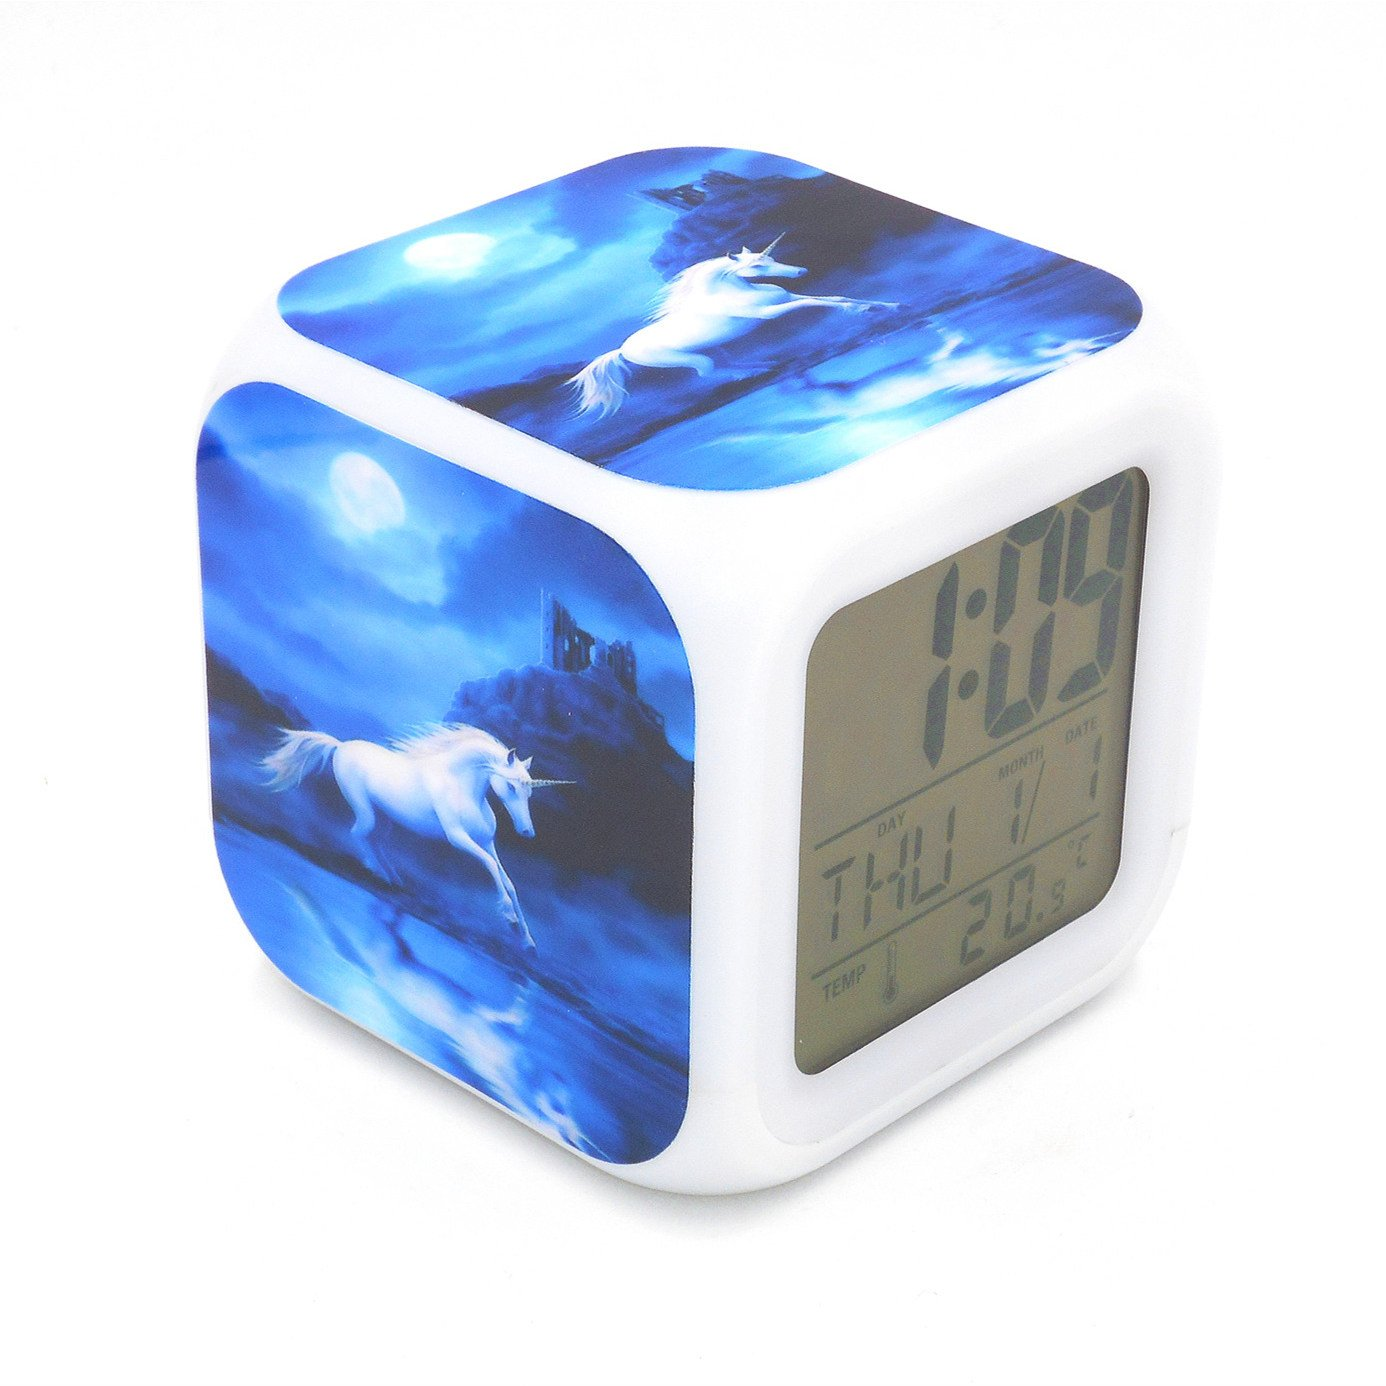 EGS New Unicorn Animal Blue Digital Alarm Clock Desk Table Led Alarm Clock Creative Personalized Multifunctional Battery Alarm Clock Special Toy Gift for Unisex Kids Adults